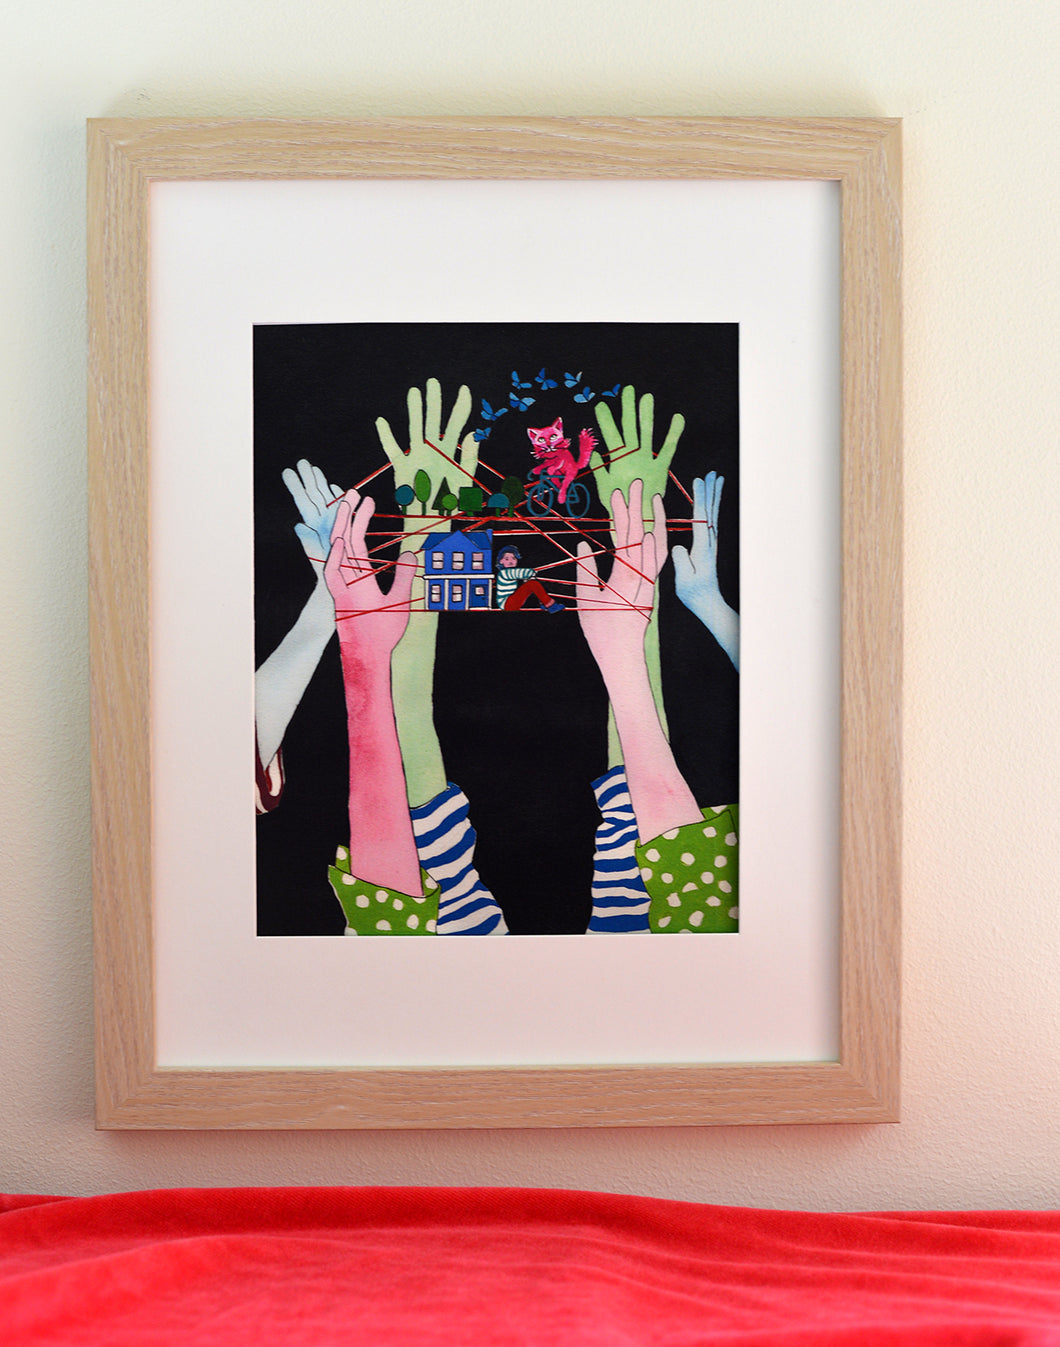 Hands art print by Abbi Israelsen - Root and Star